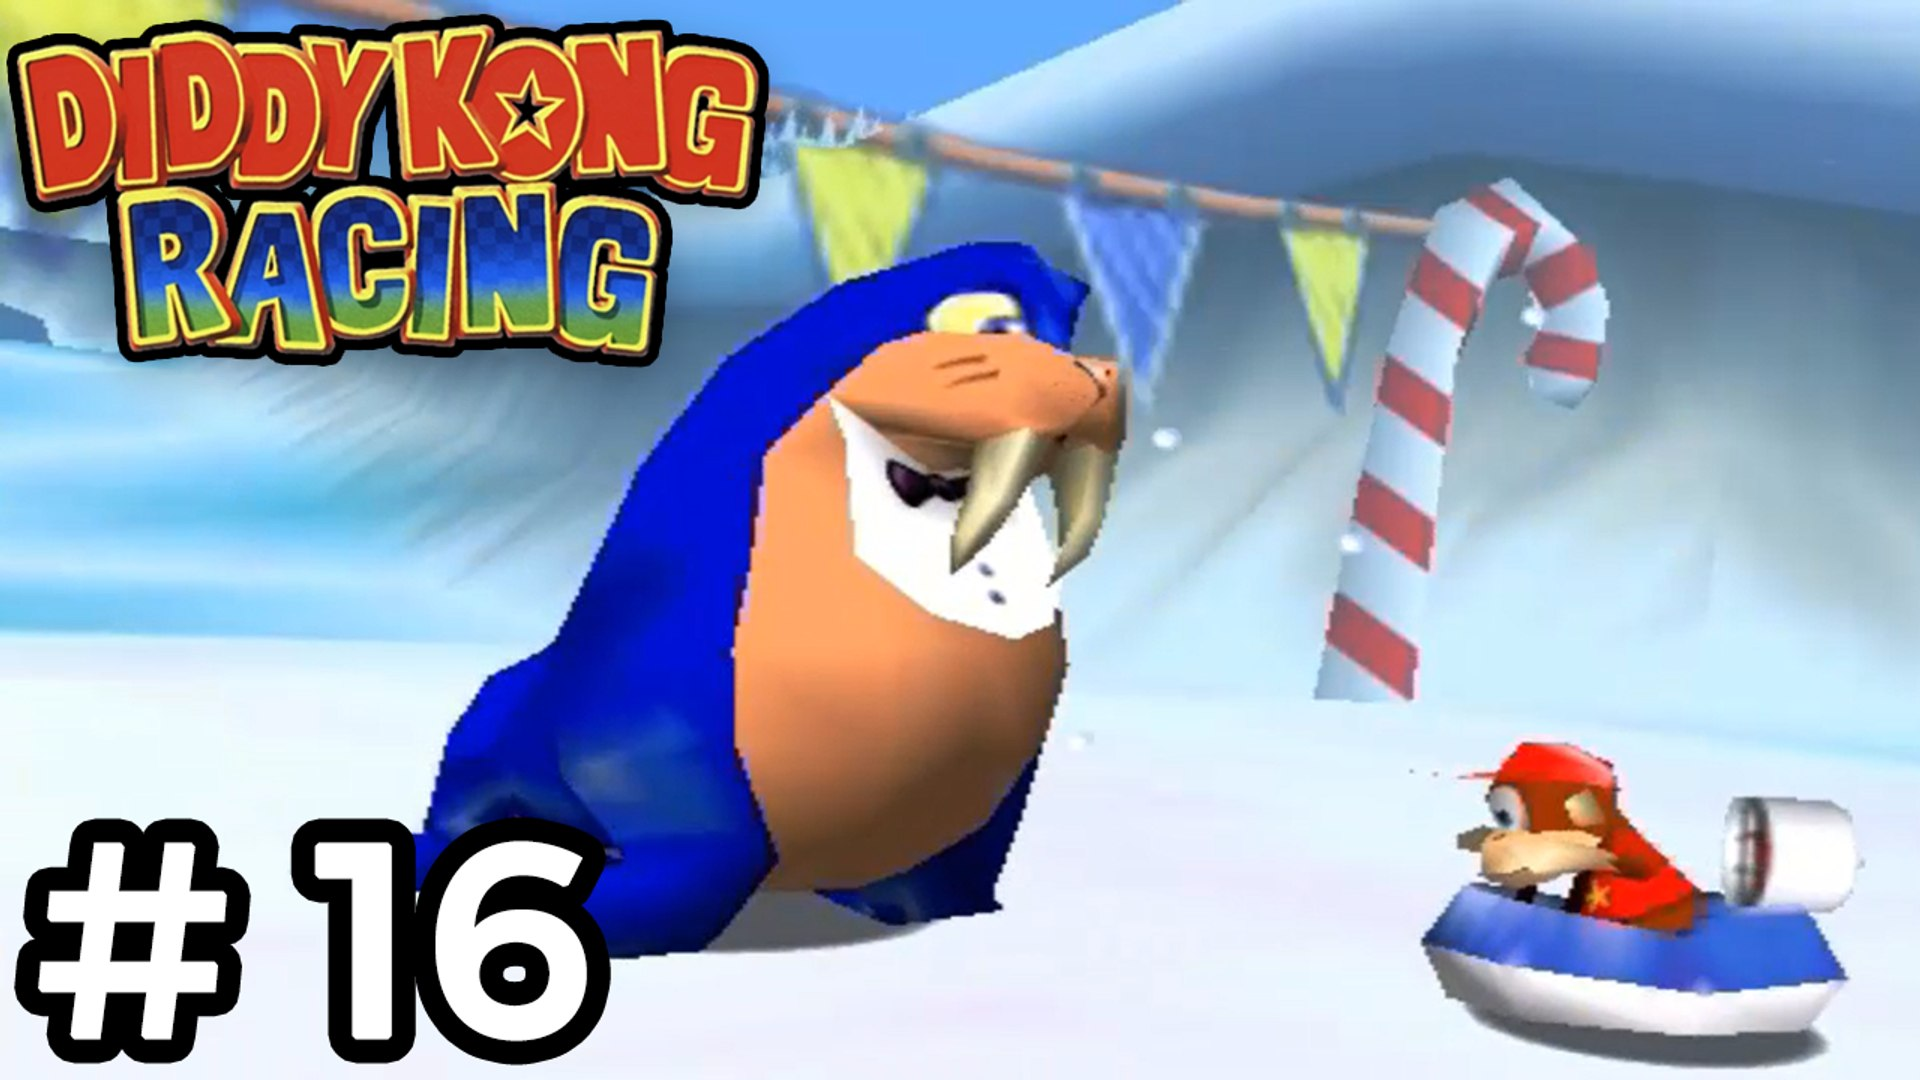 Diddy Kong Racing - #16 [Bluey the Walrus] O chefe